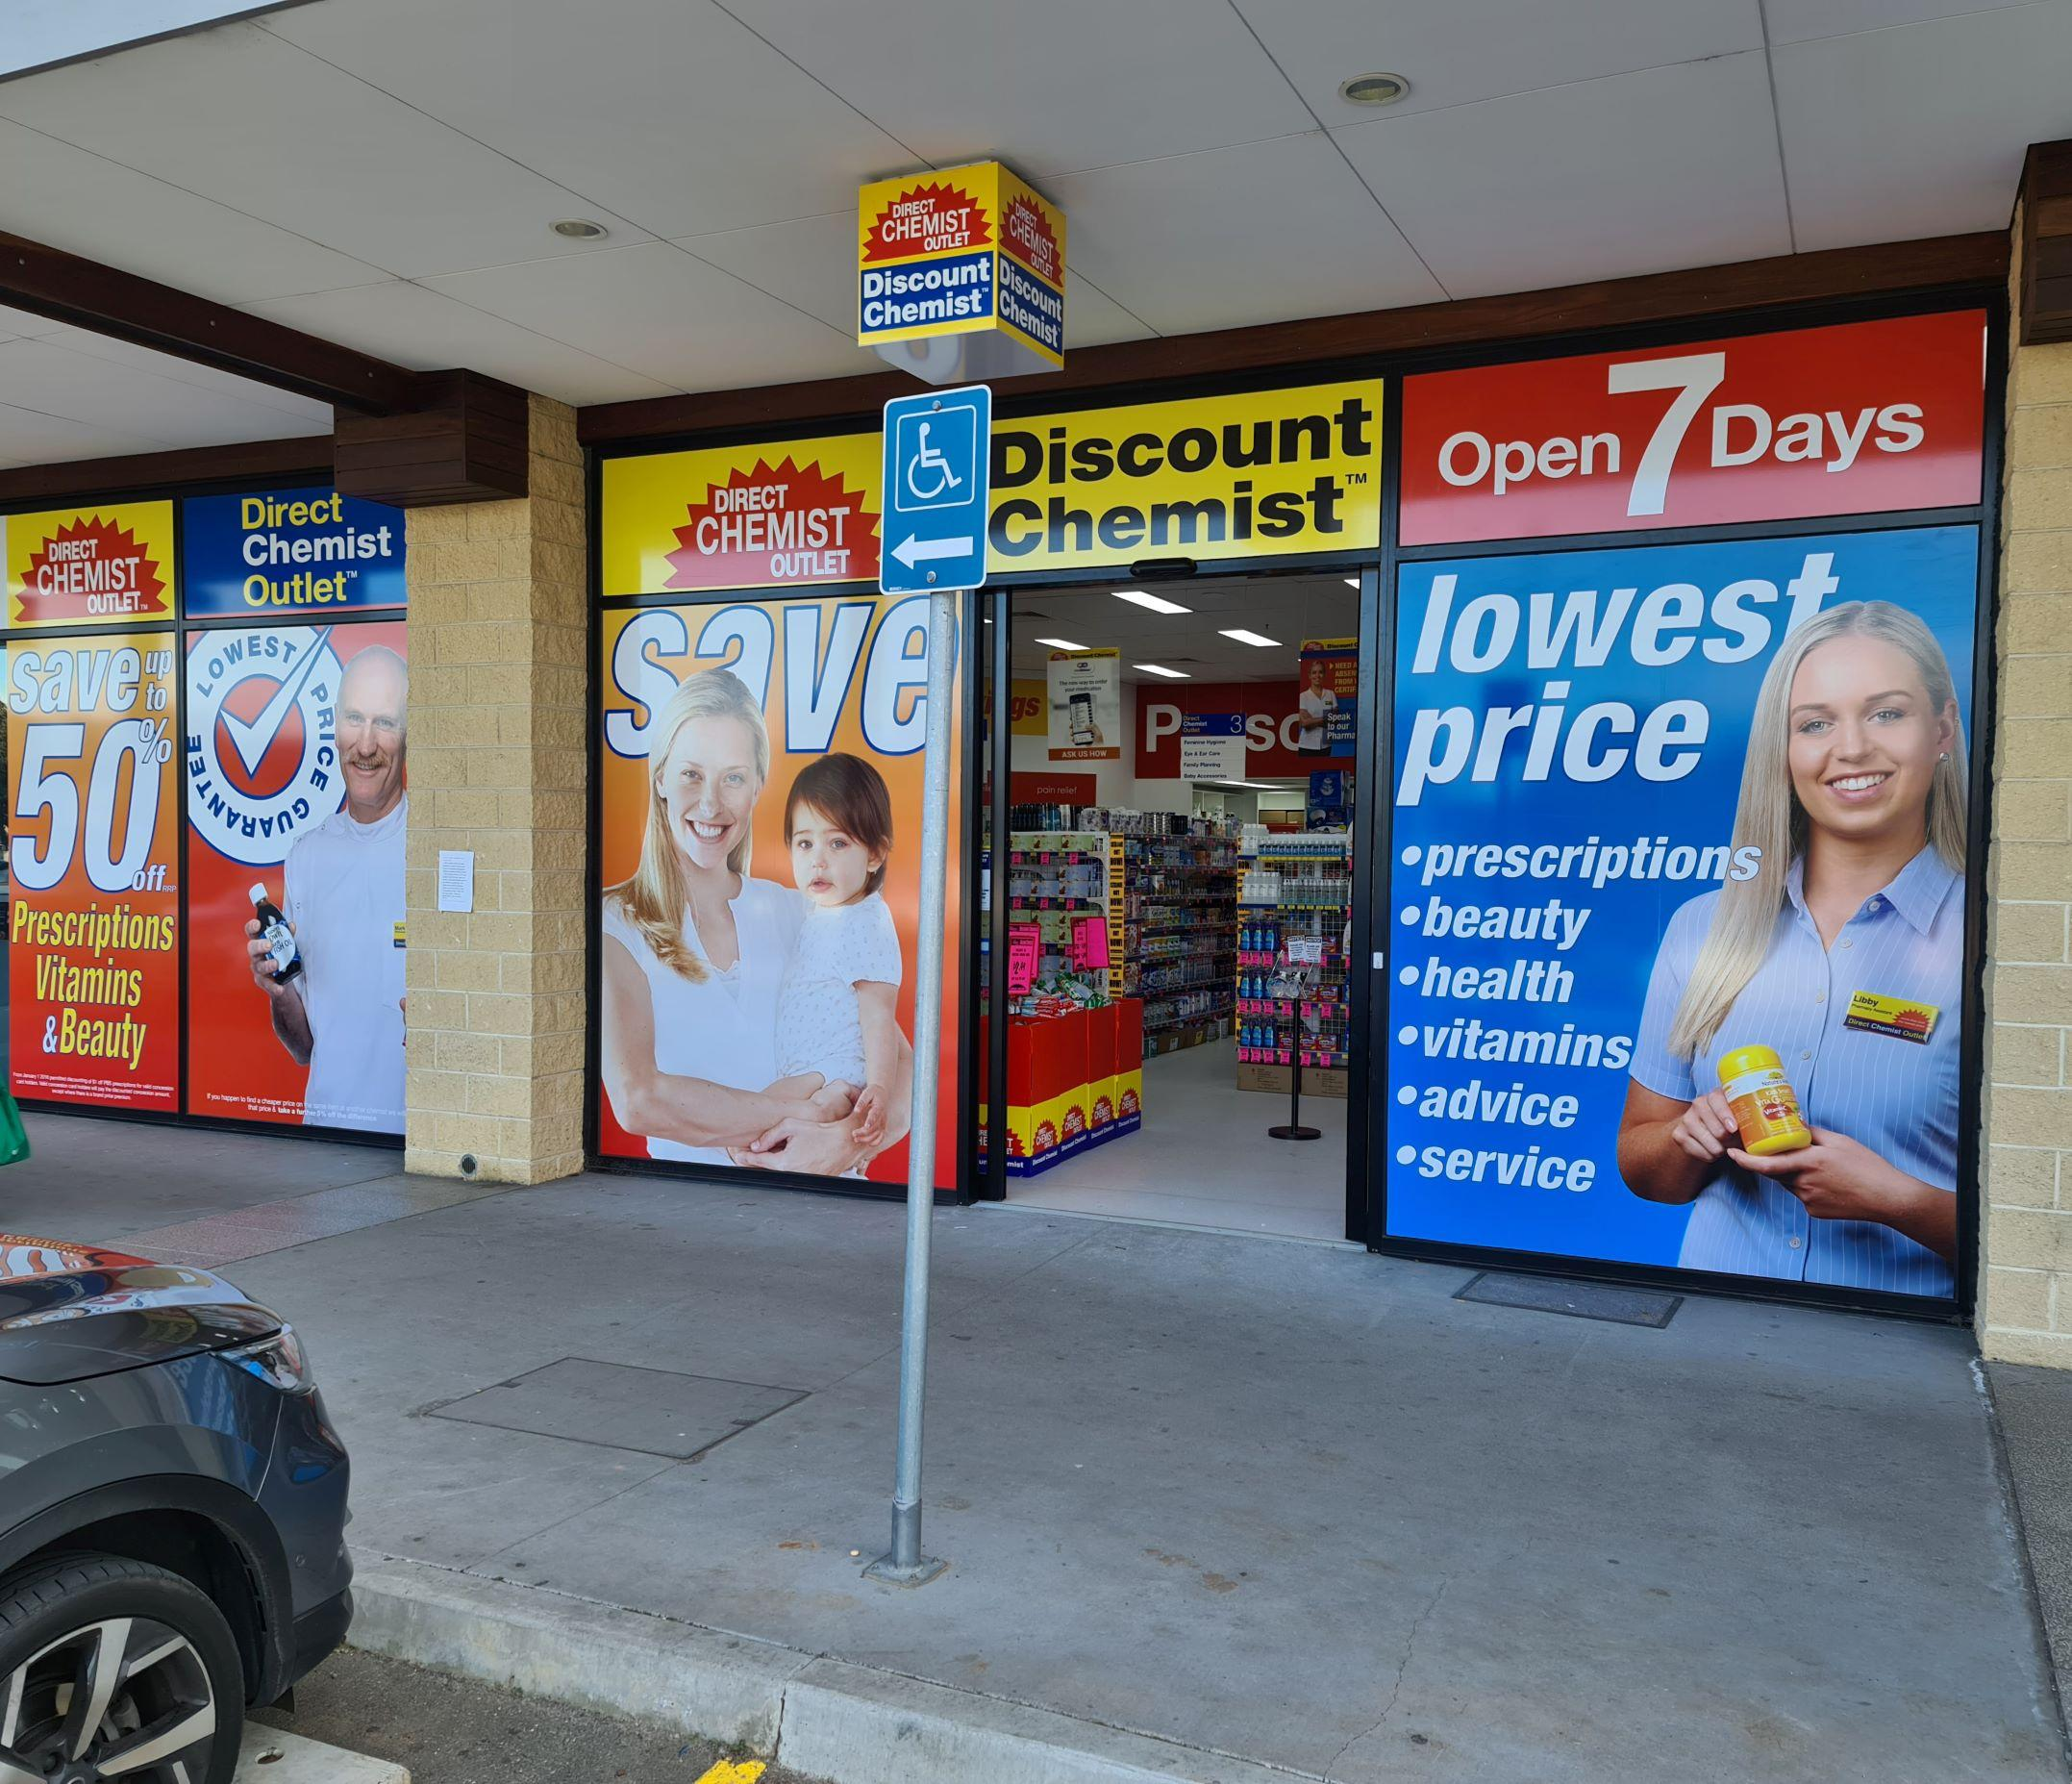 Direct Chemist Outlet Featherbrook